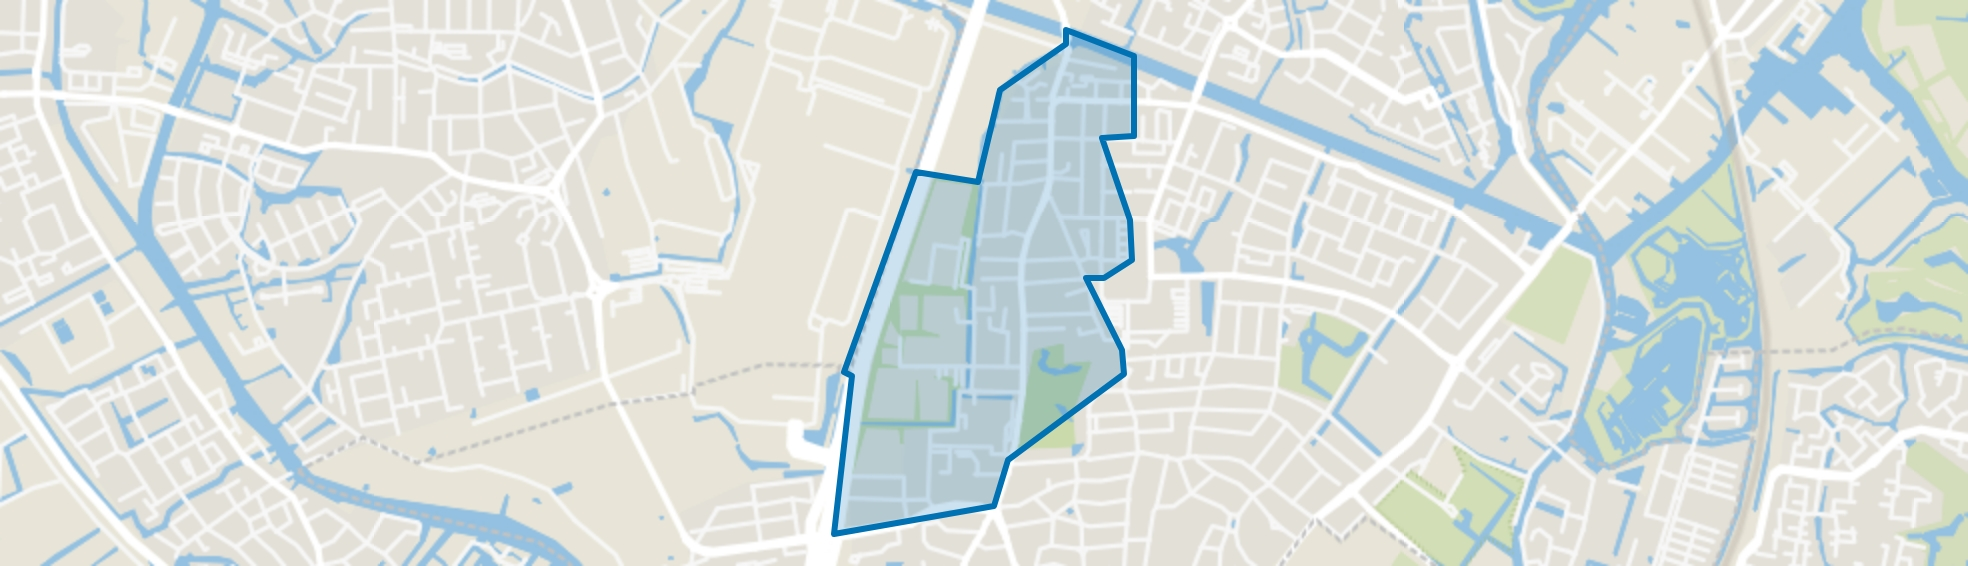 Voscuyl, Oegstgeest map